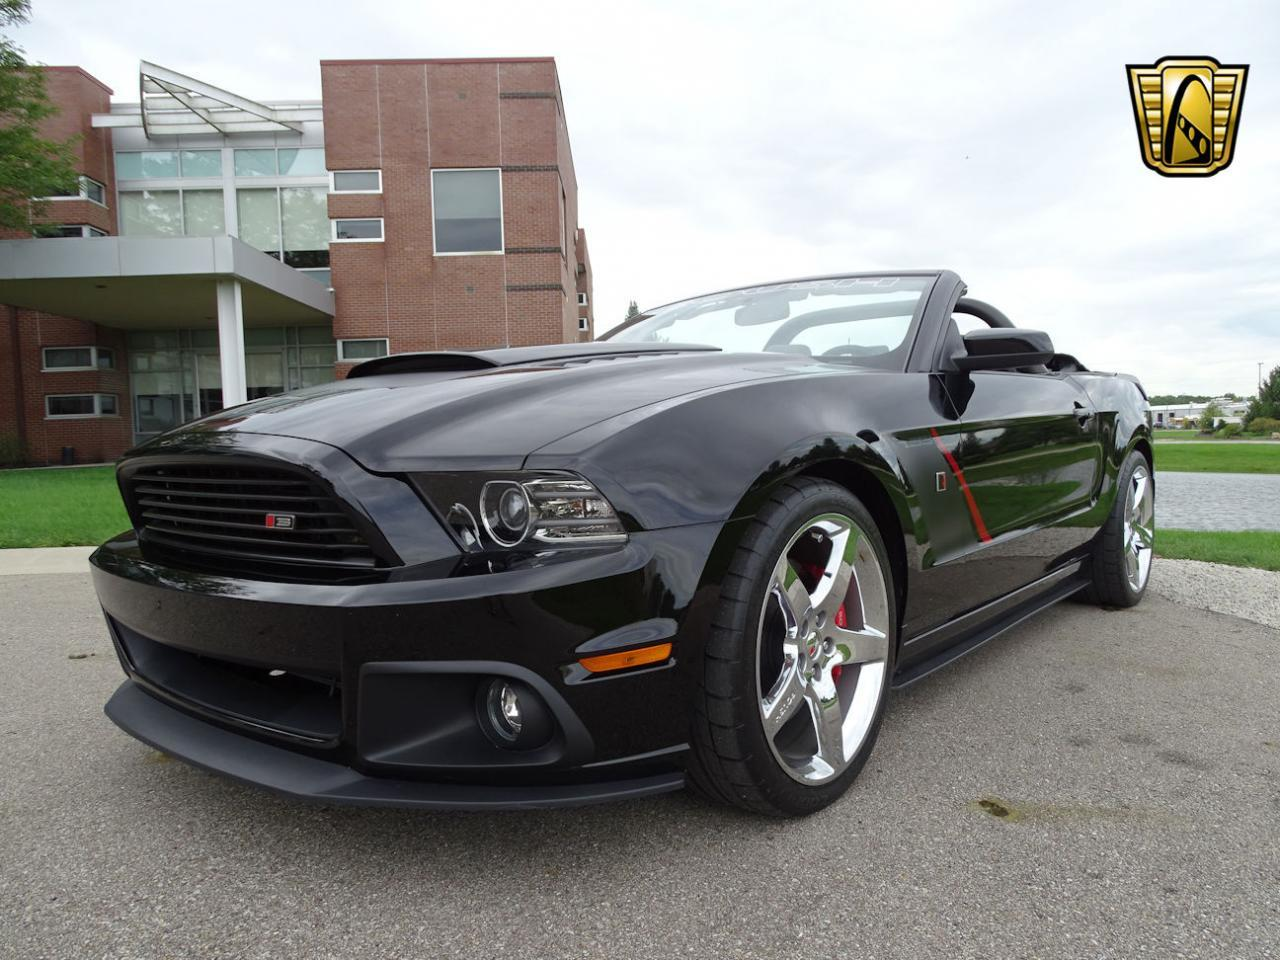 mustang gt ford indianapolis indiana classic cc classiccars financing inspection insurance transport